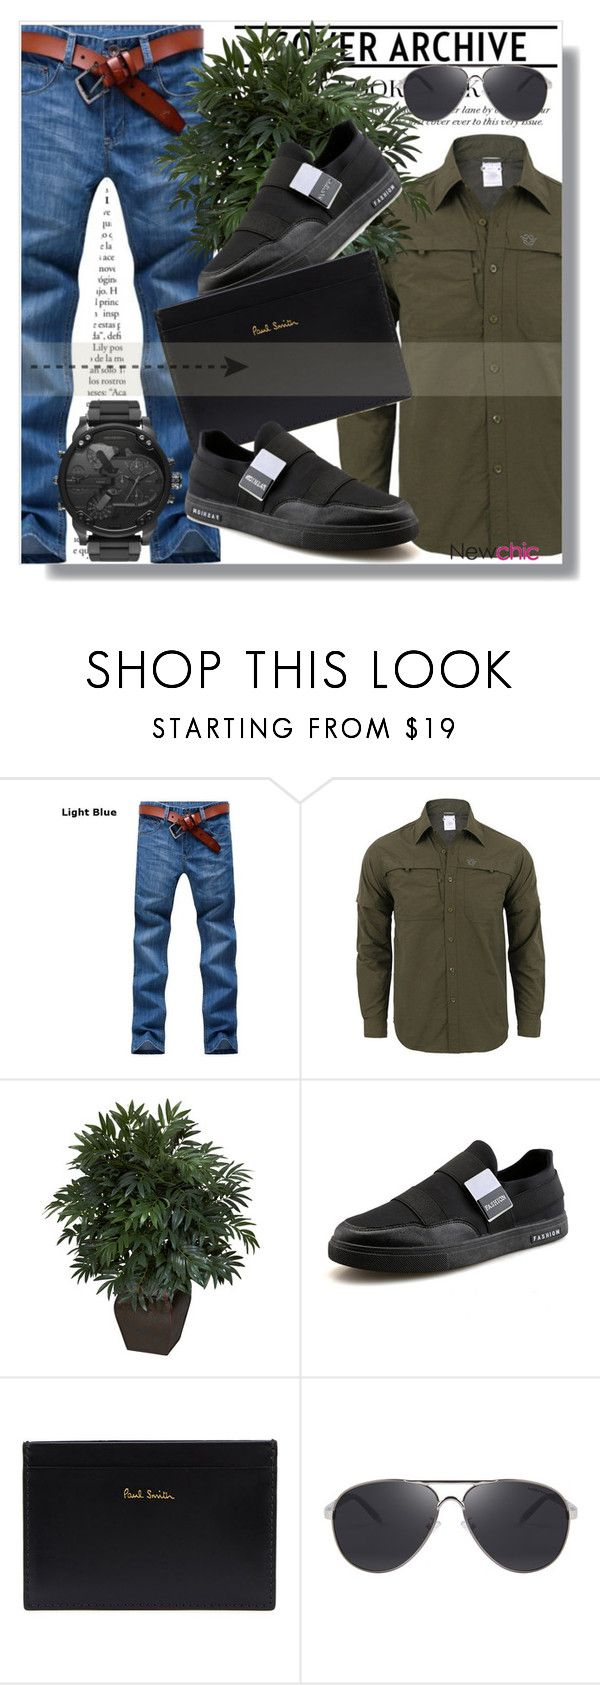 """Newchic Anniversary SALE !"" by dianagrigoryan ❤ liked on Polyvore featuring Nearly Natural, Paul Smith, Diesel, men's fashion and menswear"